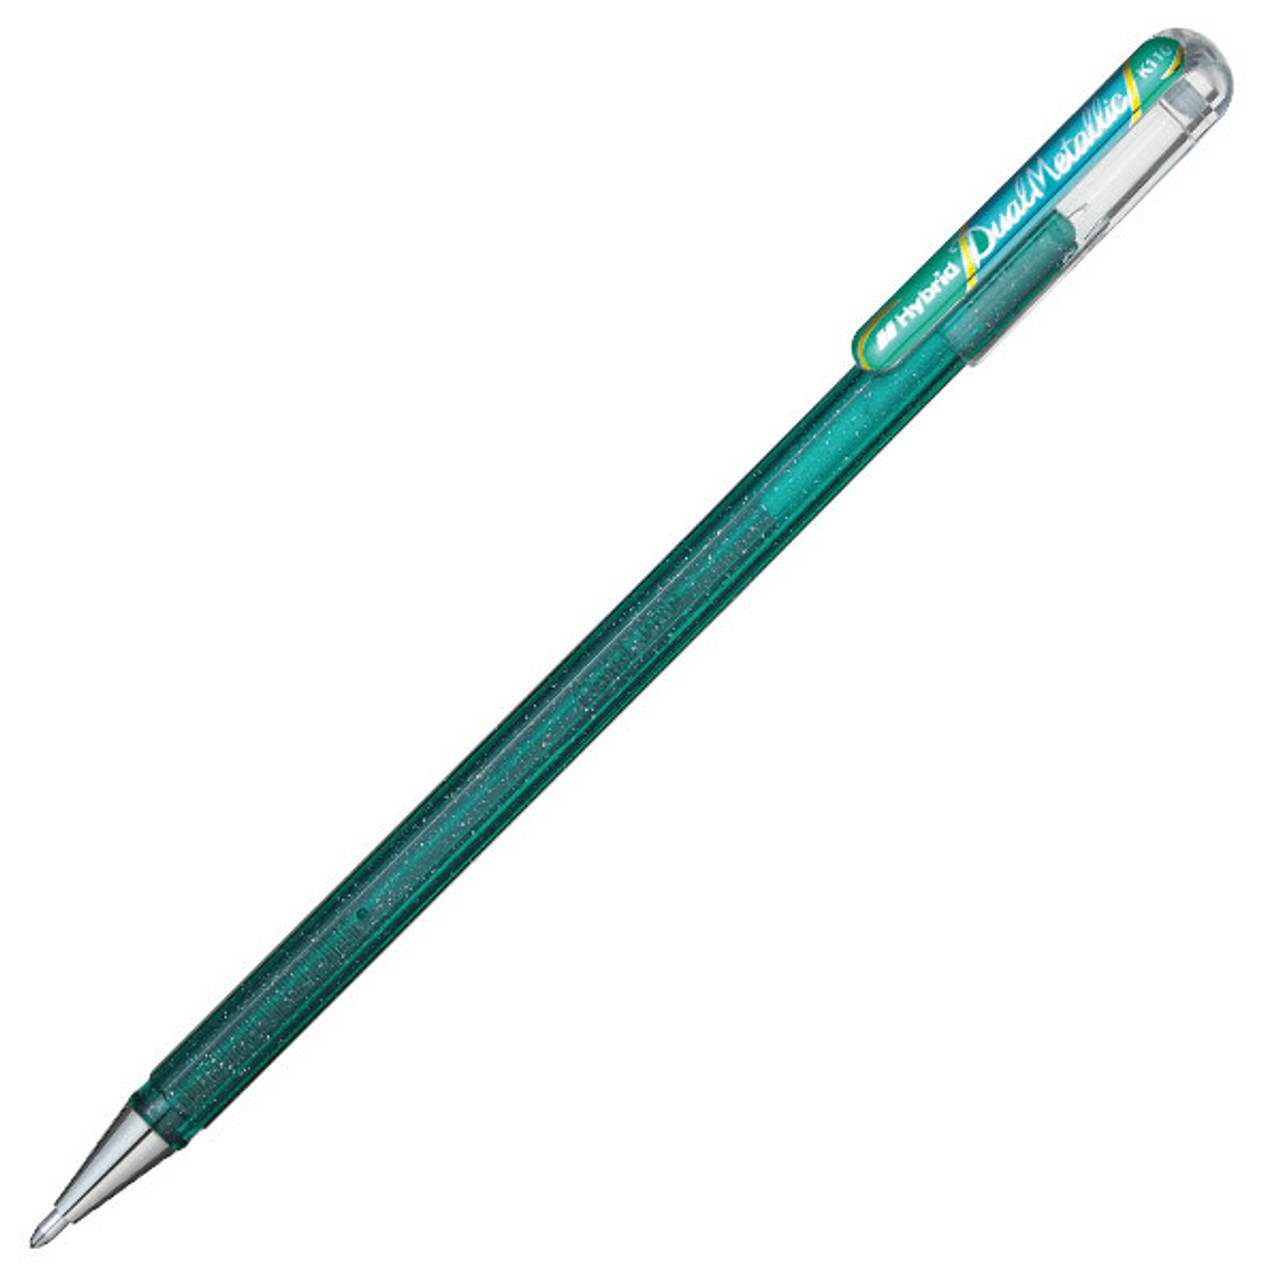 Pentel dual metallic pen, - green-blue